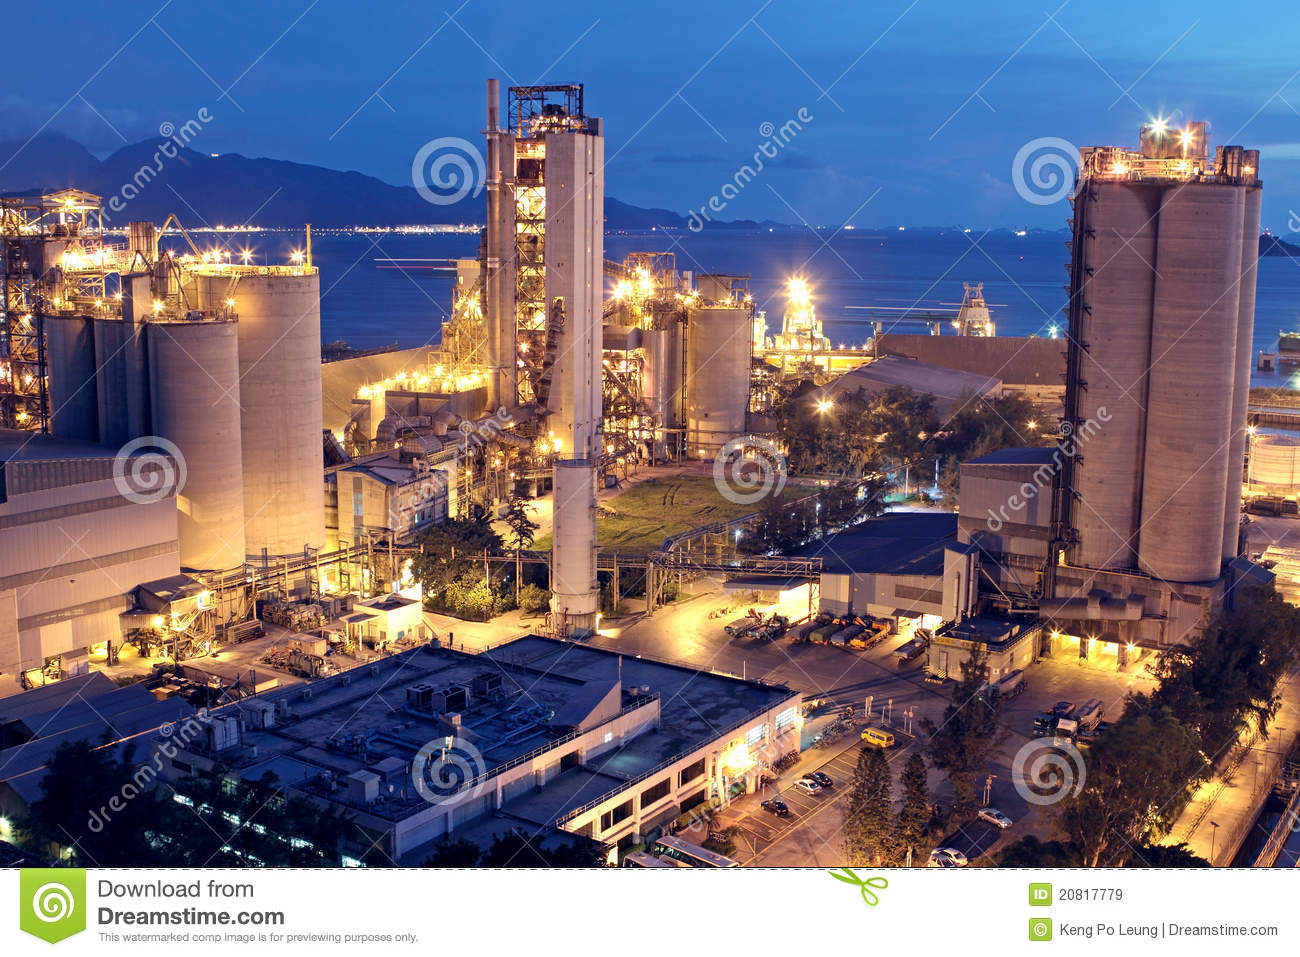 Huge Cement Plant : Cement plant royalty free stock images image